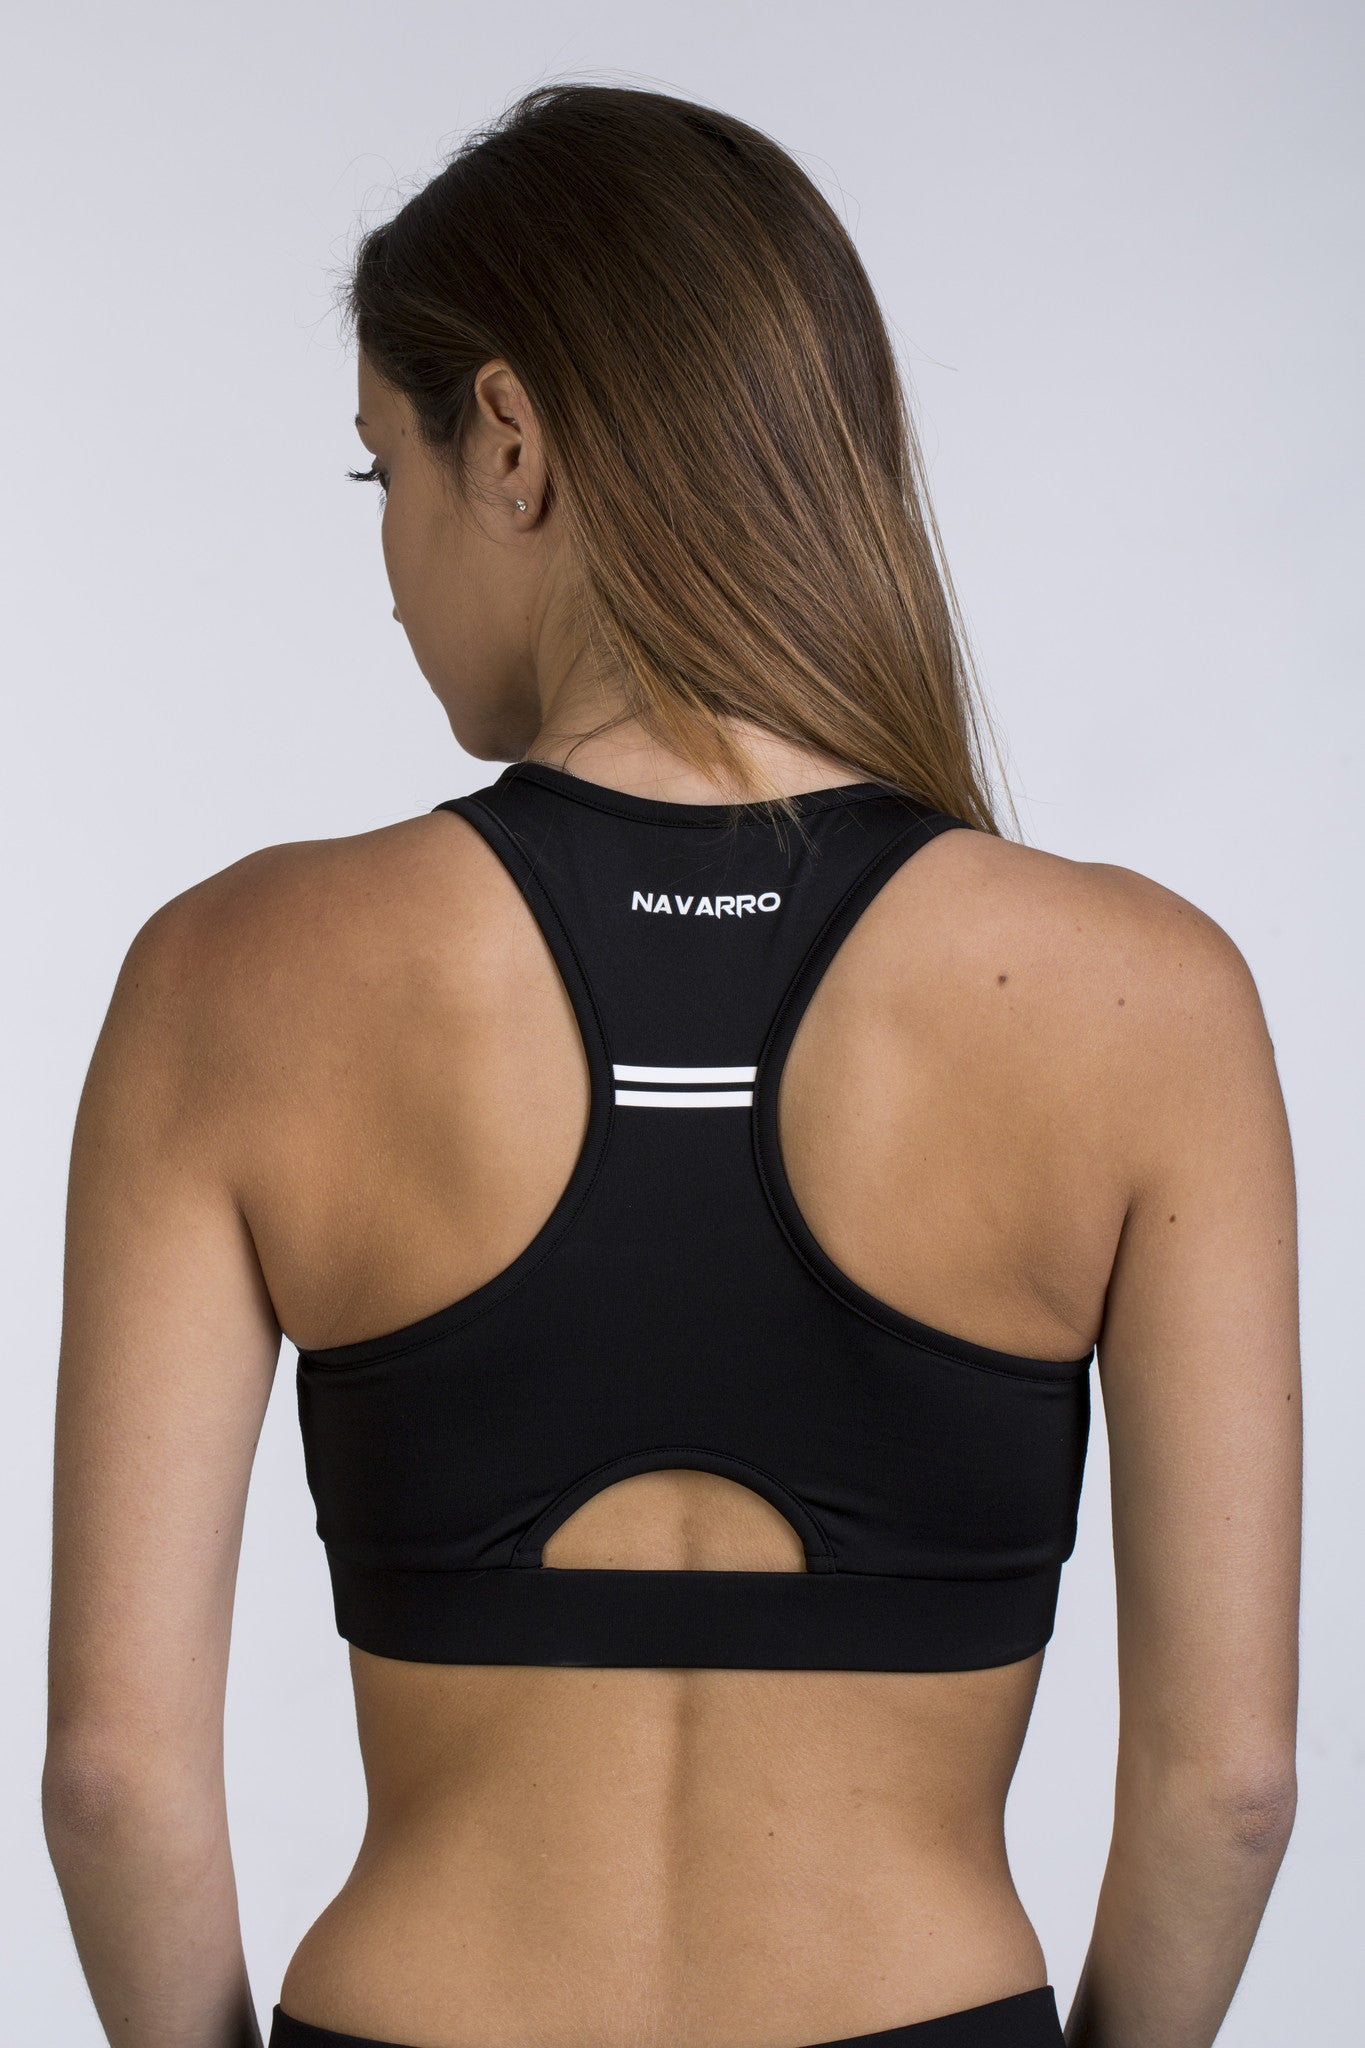 Women's W1 Sports Bra Top - Black